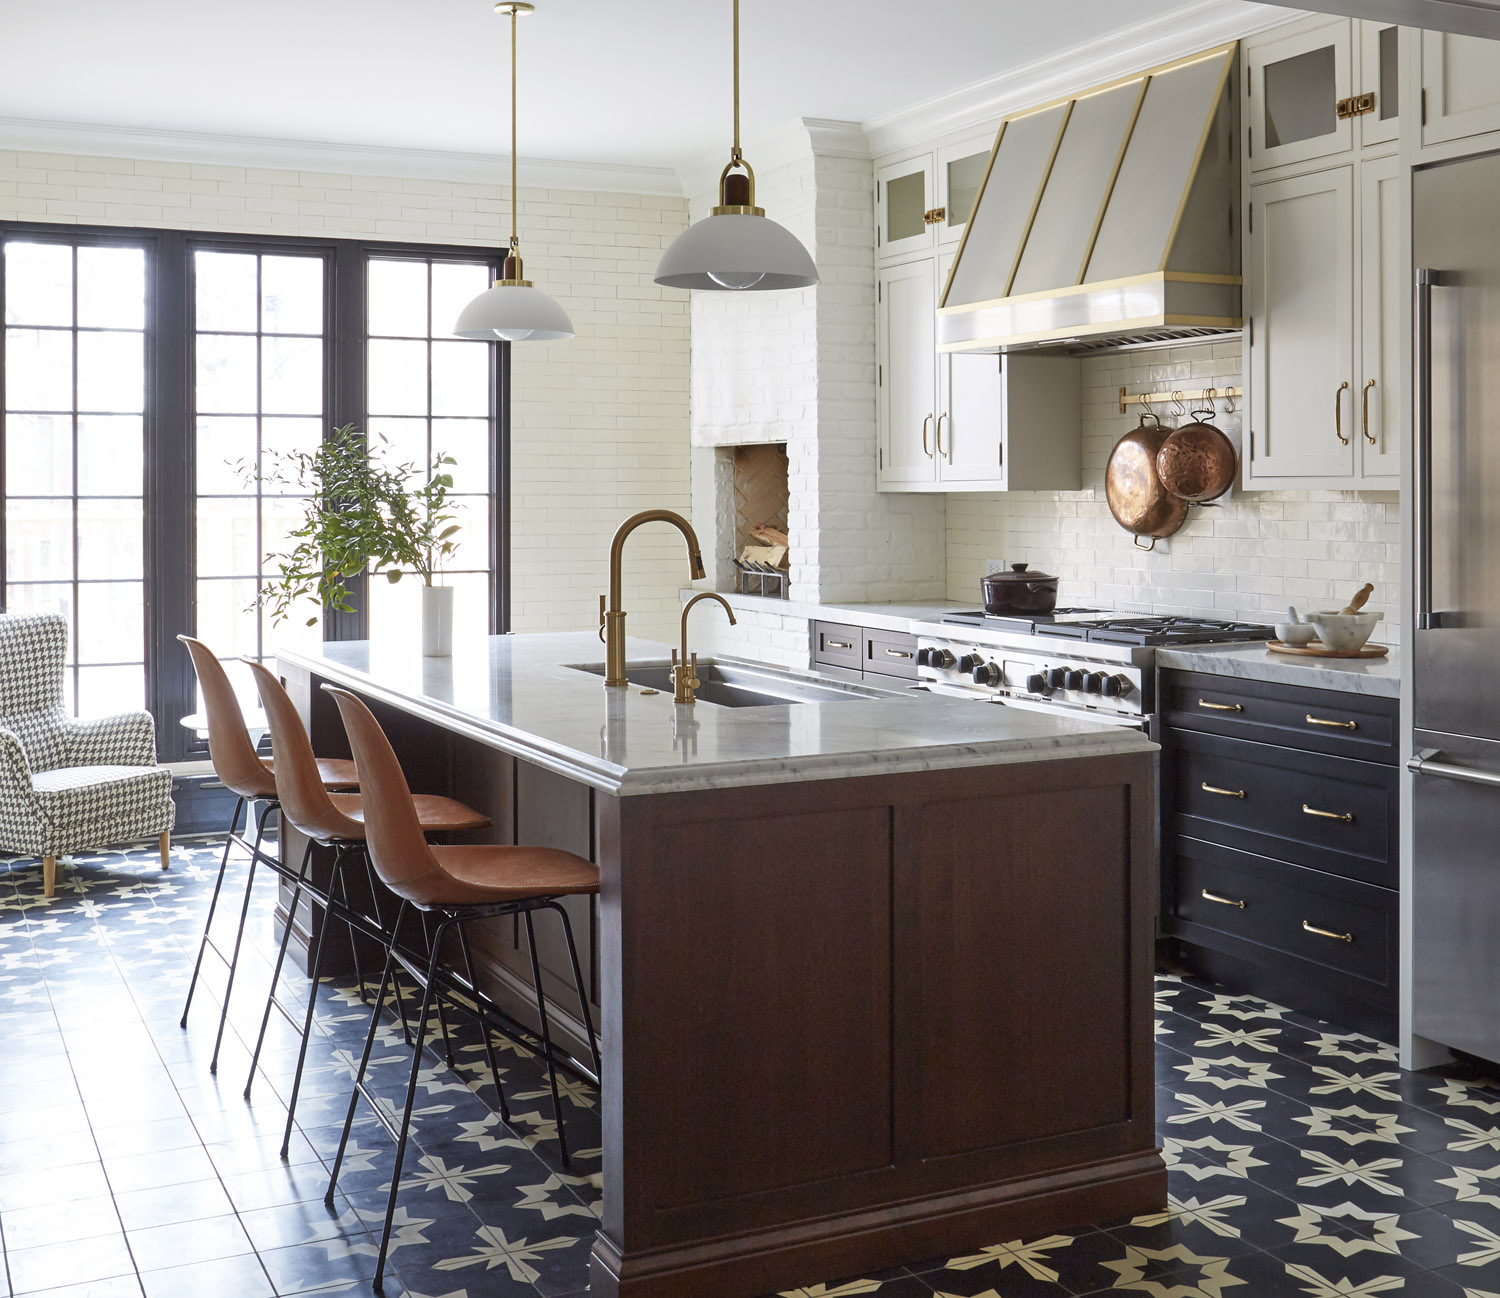 A Historical Inspired Kitchen With Industrial Vibes In Chicago Rue